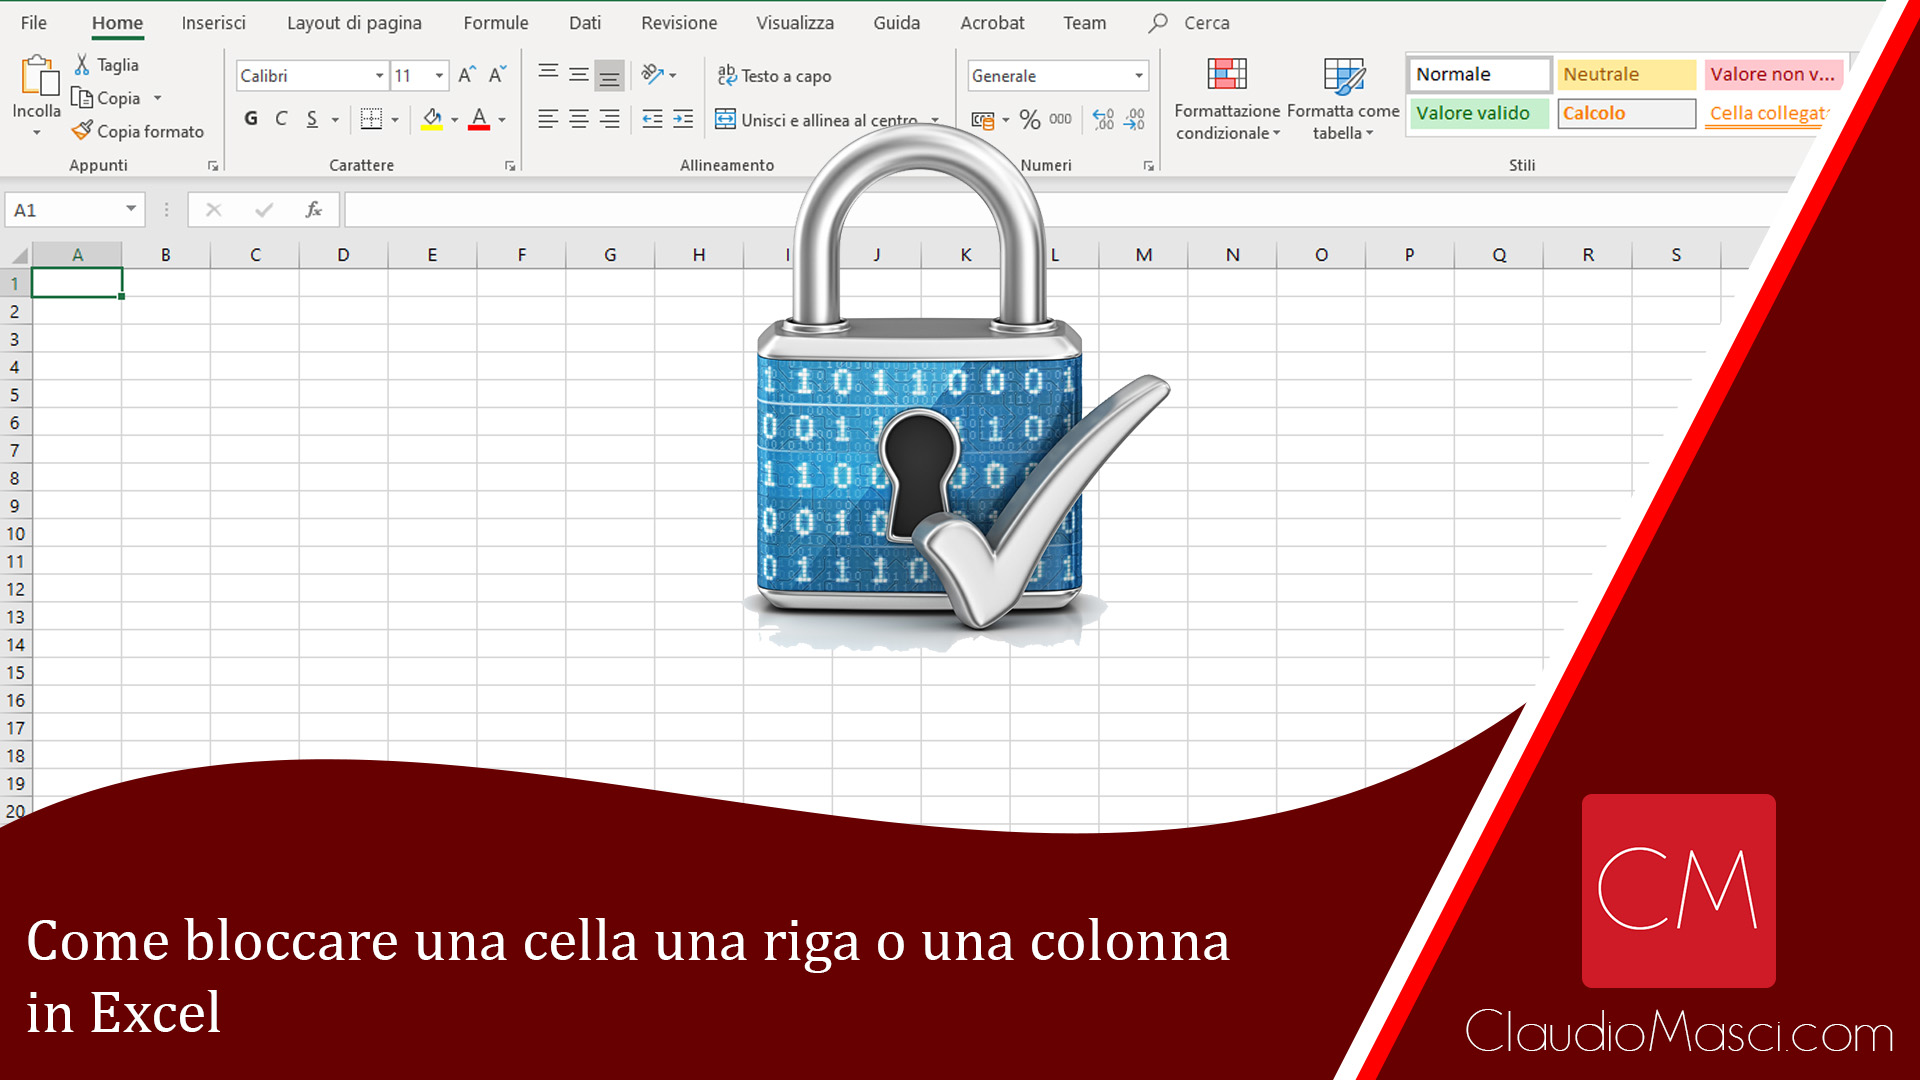 Come bloccare una cella una riga o una colonna in Excel